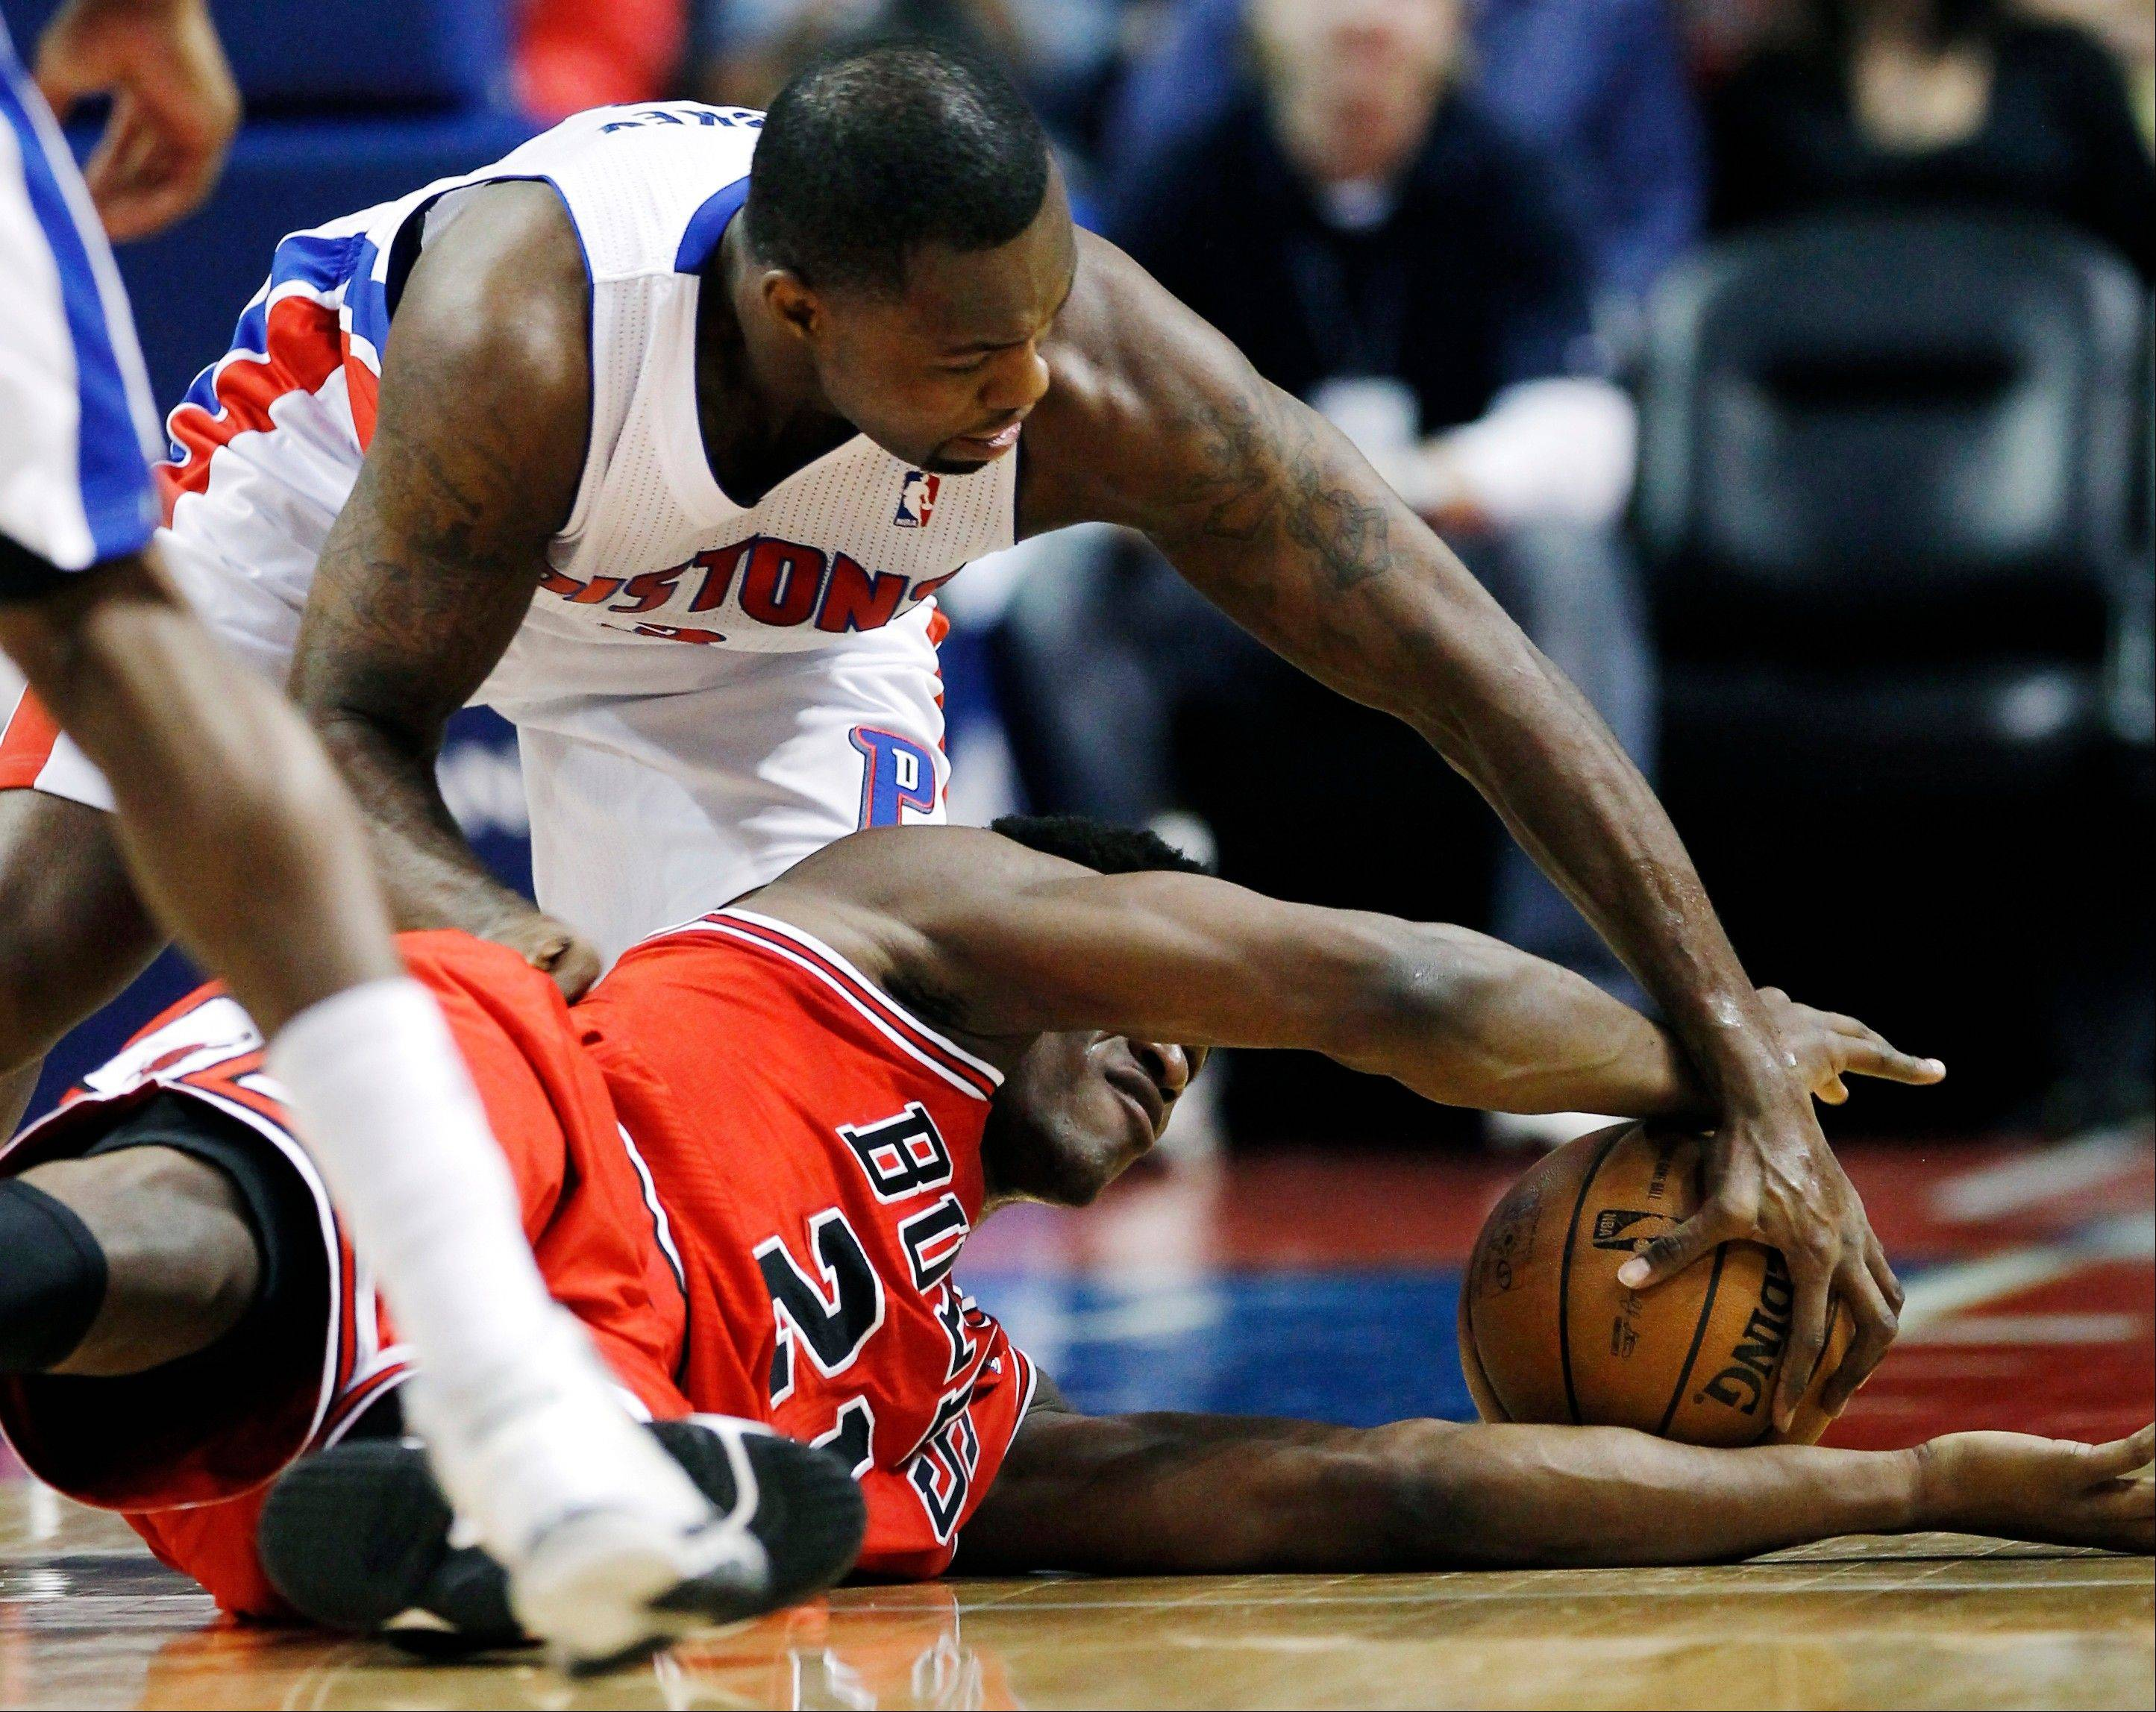 Detroit Pistons guard Rodney Stuckey, top, and Chicago Bulls guard Jimmy Butler (21) scramble for a loose ball in the first half of an NBA basketball game Sunday in Auburn Hills, Mich.